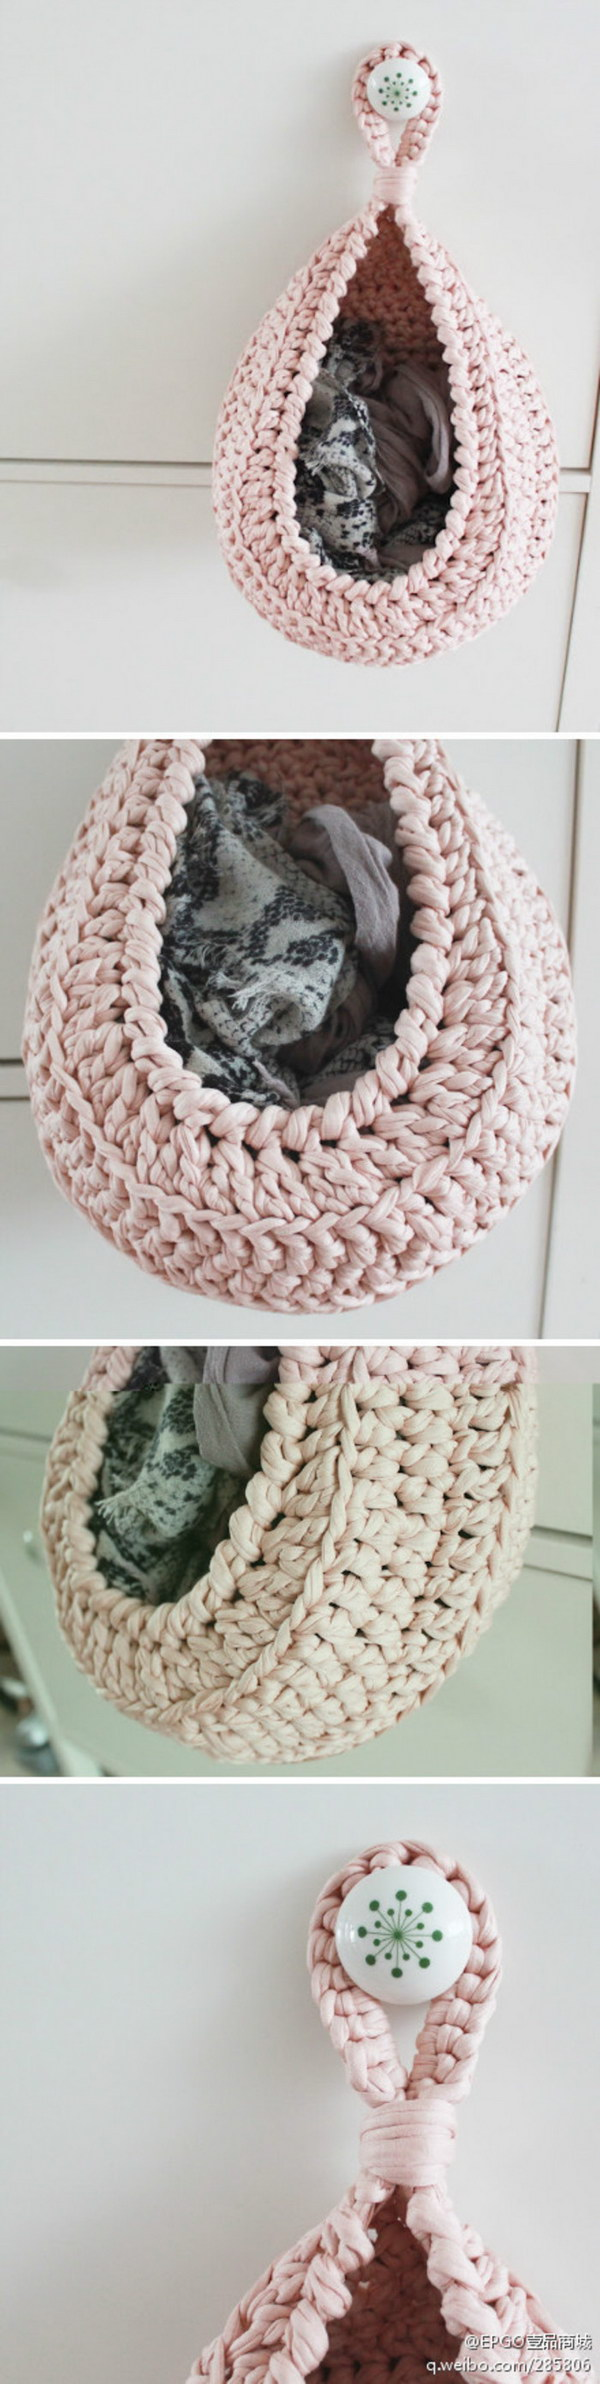 7 Awesome Crochet Projects With Lots of Free Patterns For Beginners